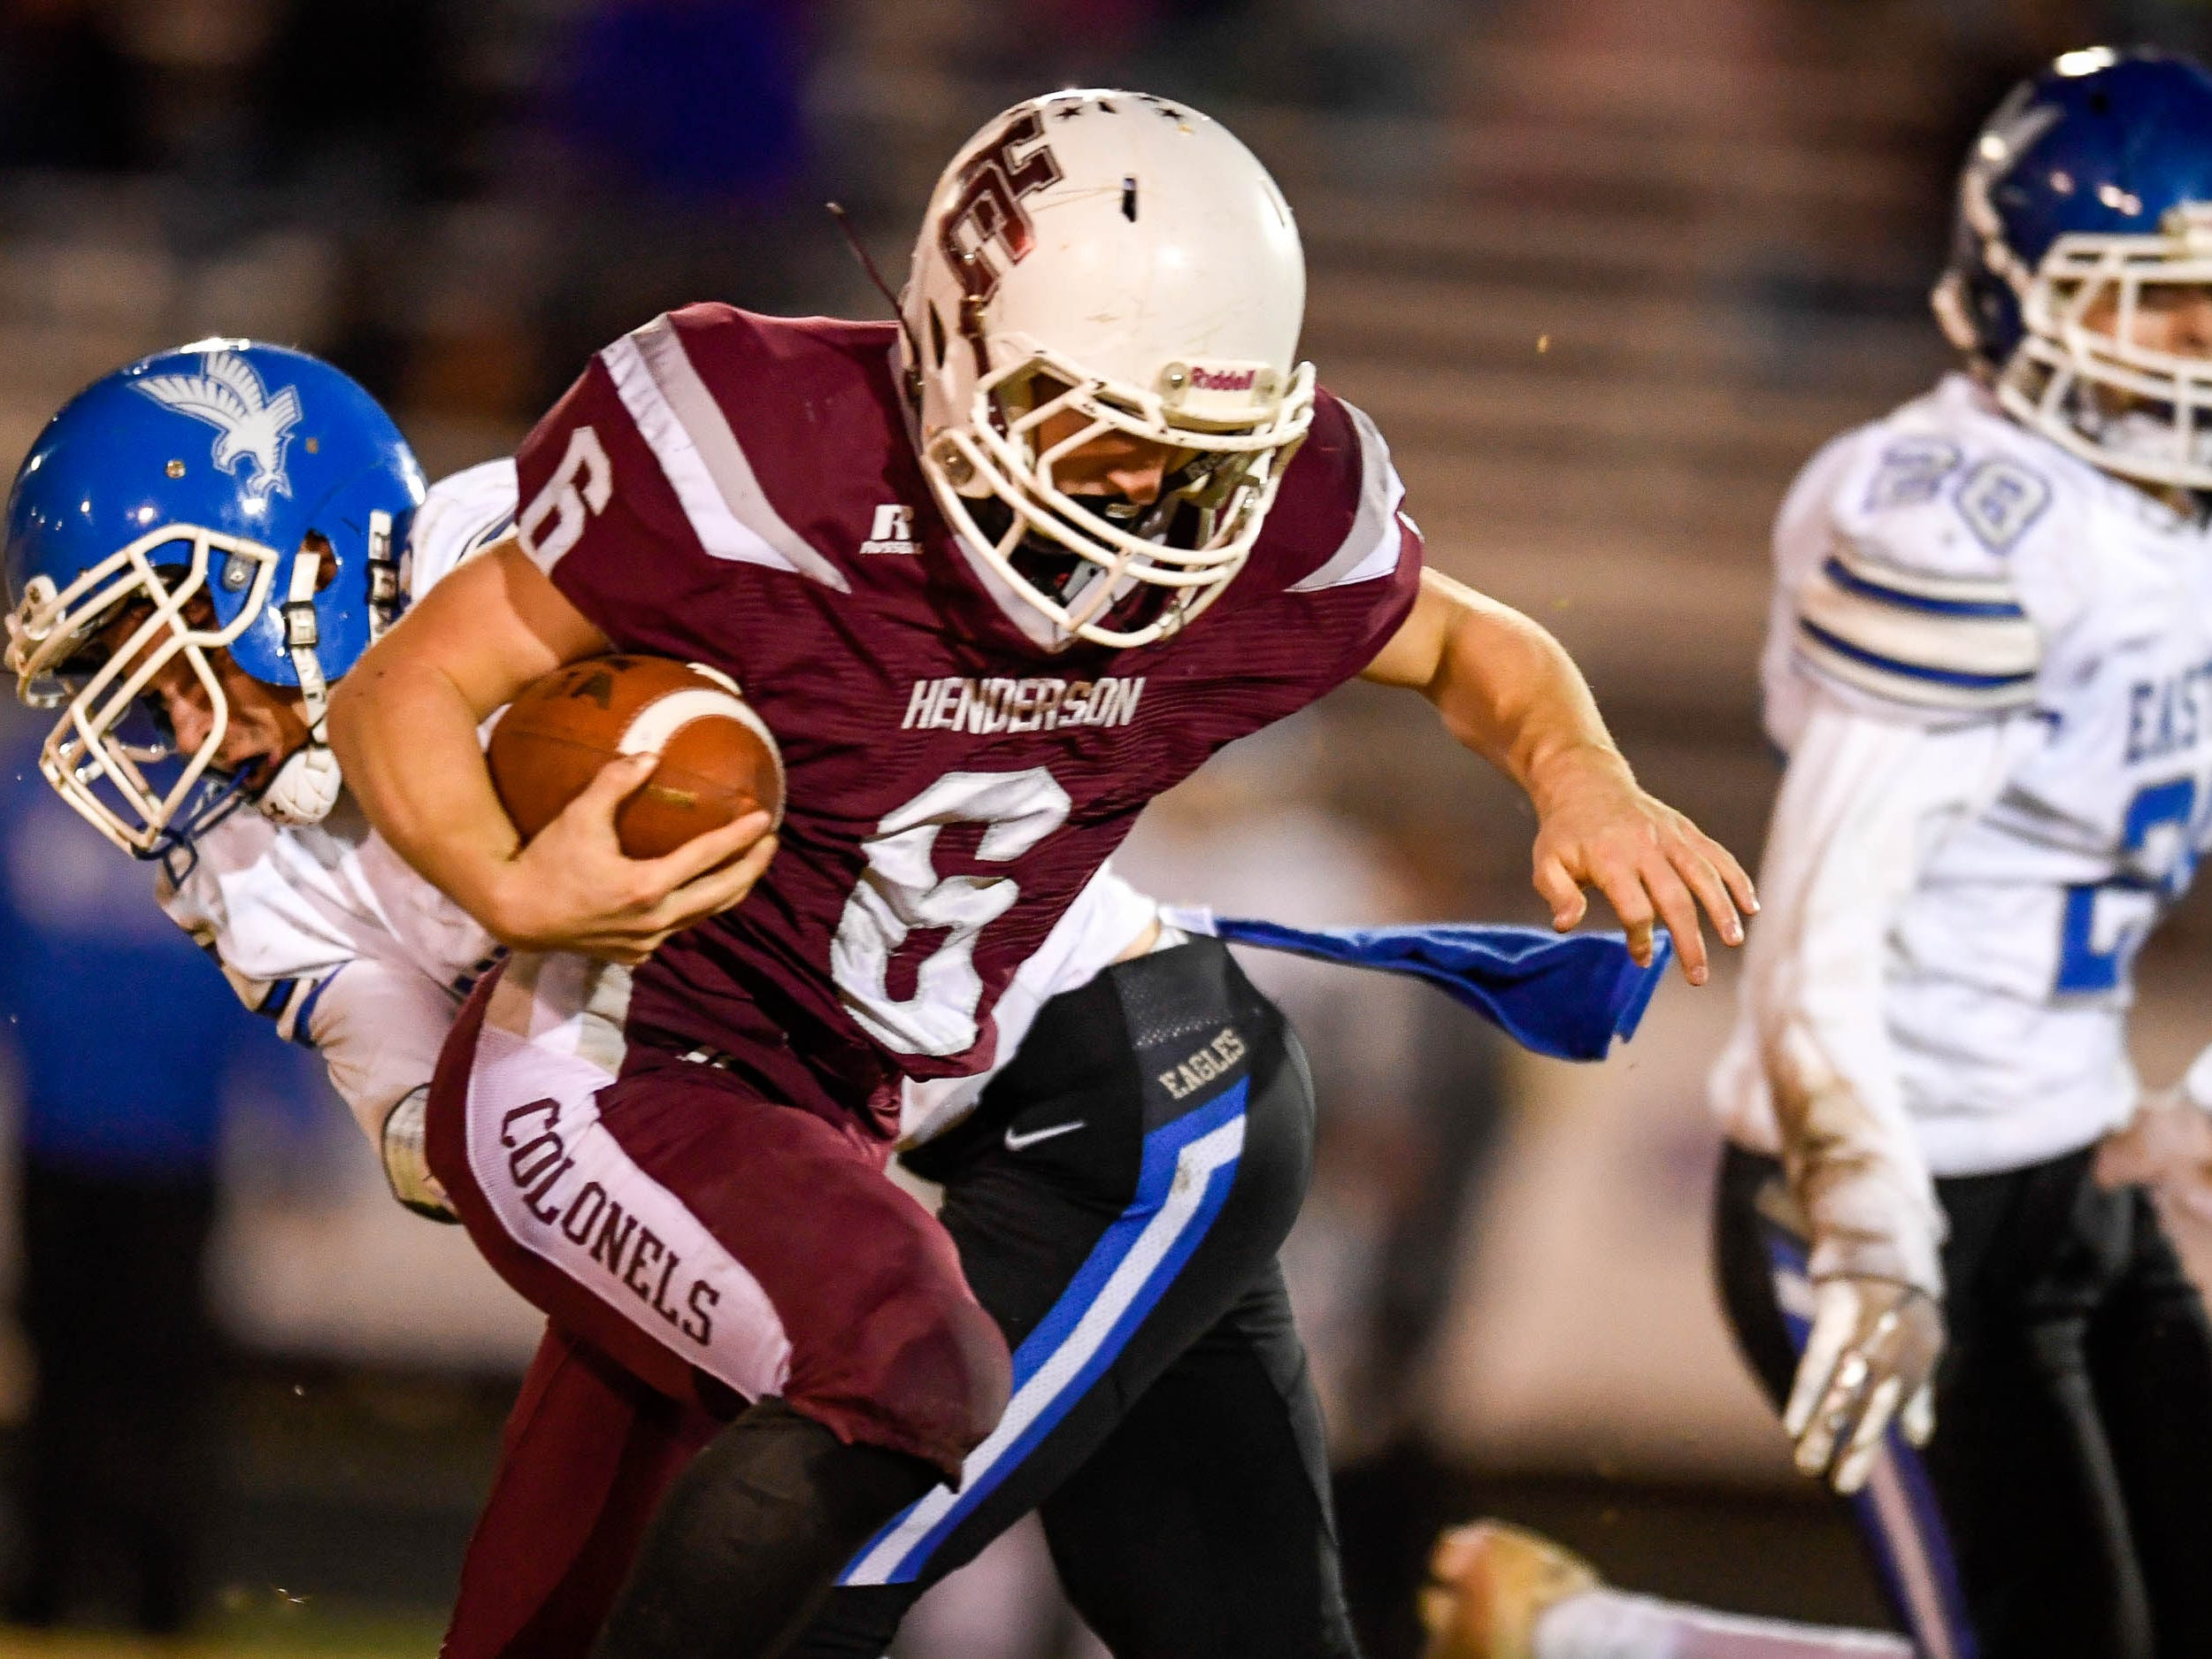 Henderson's Logan Green (6) slips past a tackle from Eastern's Trevor Bieckert (12) as the Henderson County Colonels play the Louisville Eastern Eagles in the first round of the 6-A playoffs at Colonel Field Friday, November 2, 2018.